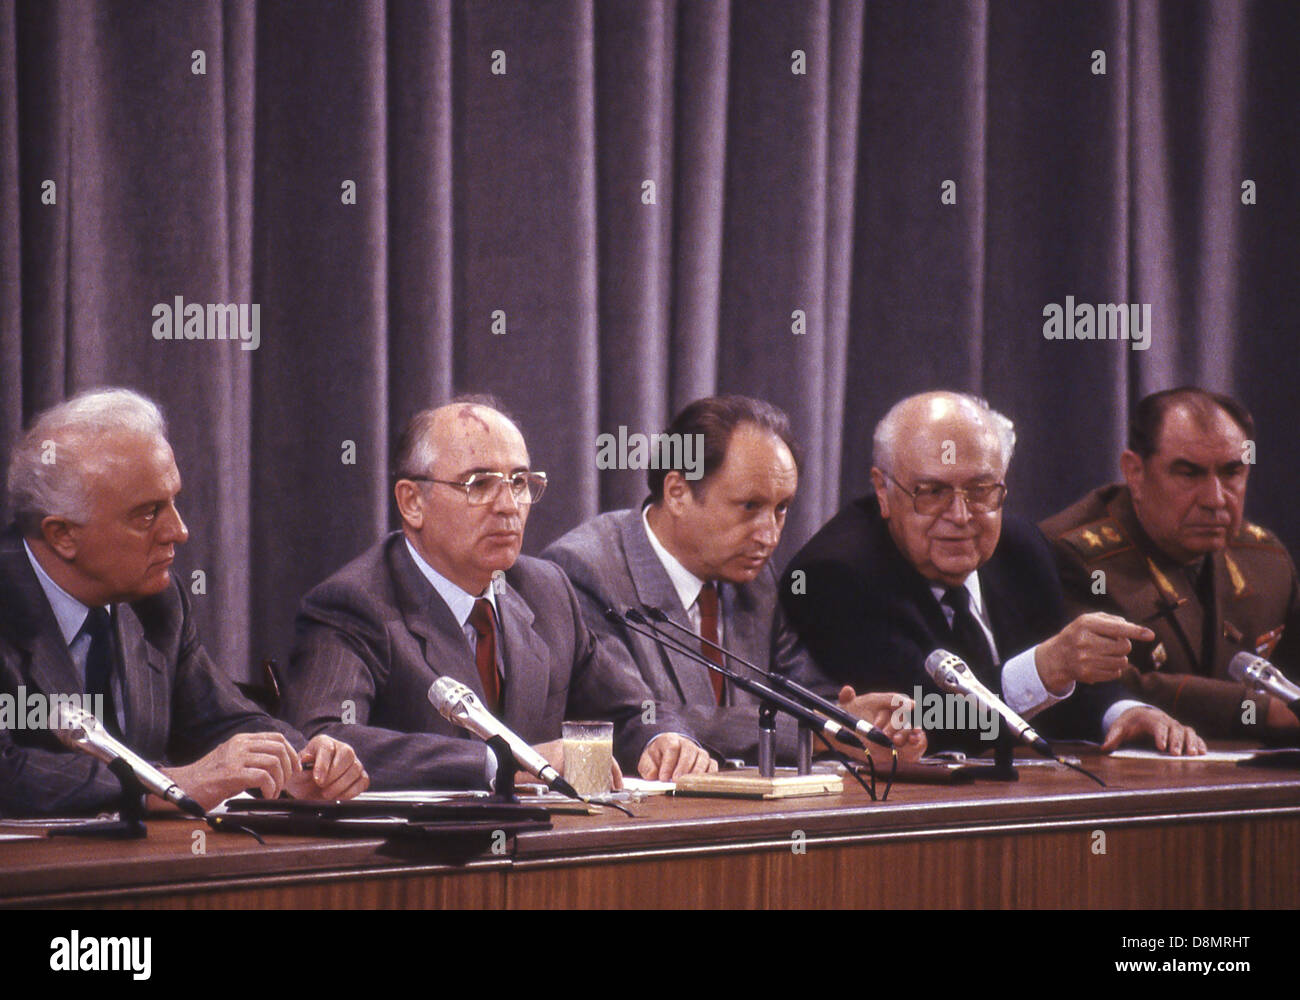 June 3, 1988 - Moscow, RU - Dobrynin points out someone in the audience to Gerasimov as Soviet leader MIKHAIL GORBACHEV - Stock Image